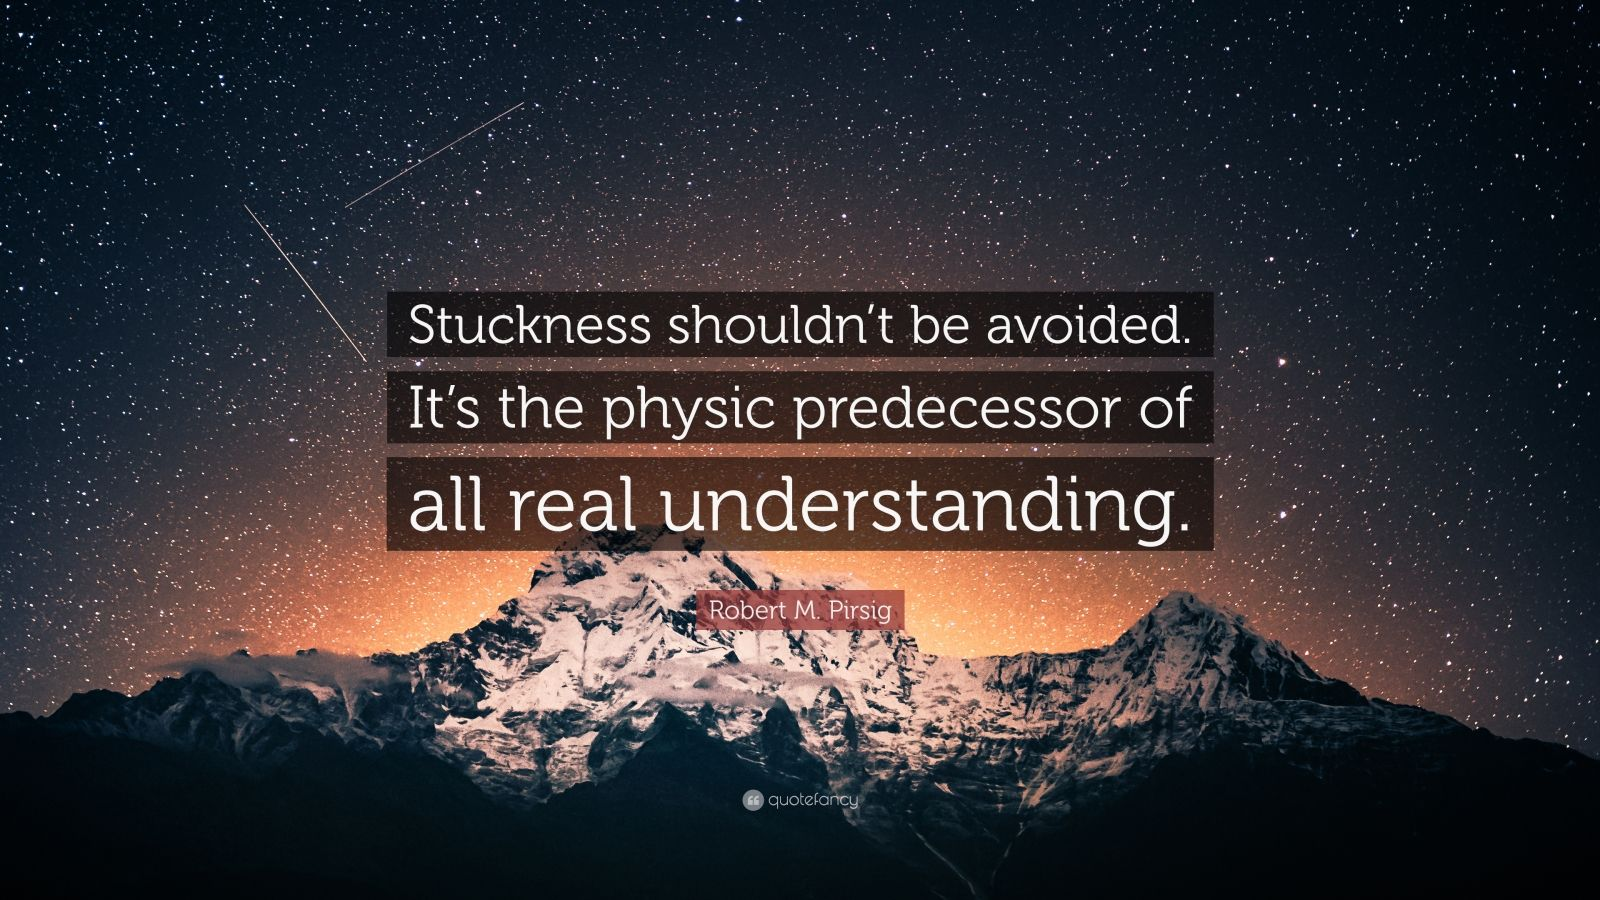 """Robert M. Pirsig Quote: """"Stuckness shouldn't be avoided. It's the physic predecessor of all real understanding."""""""